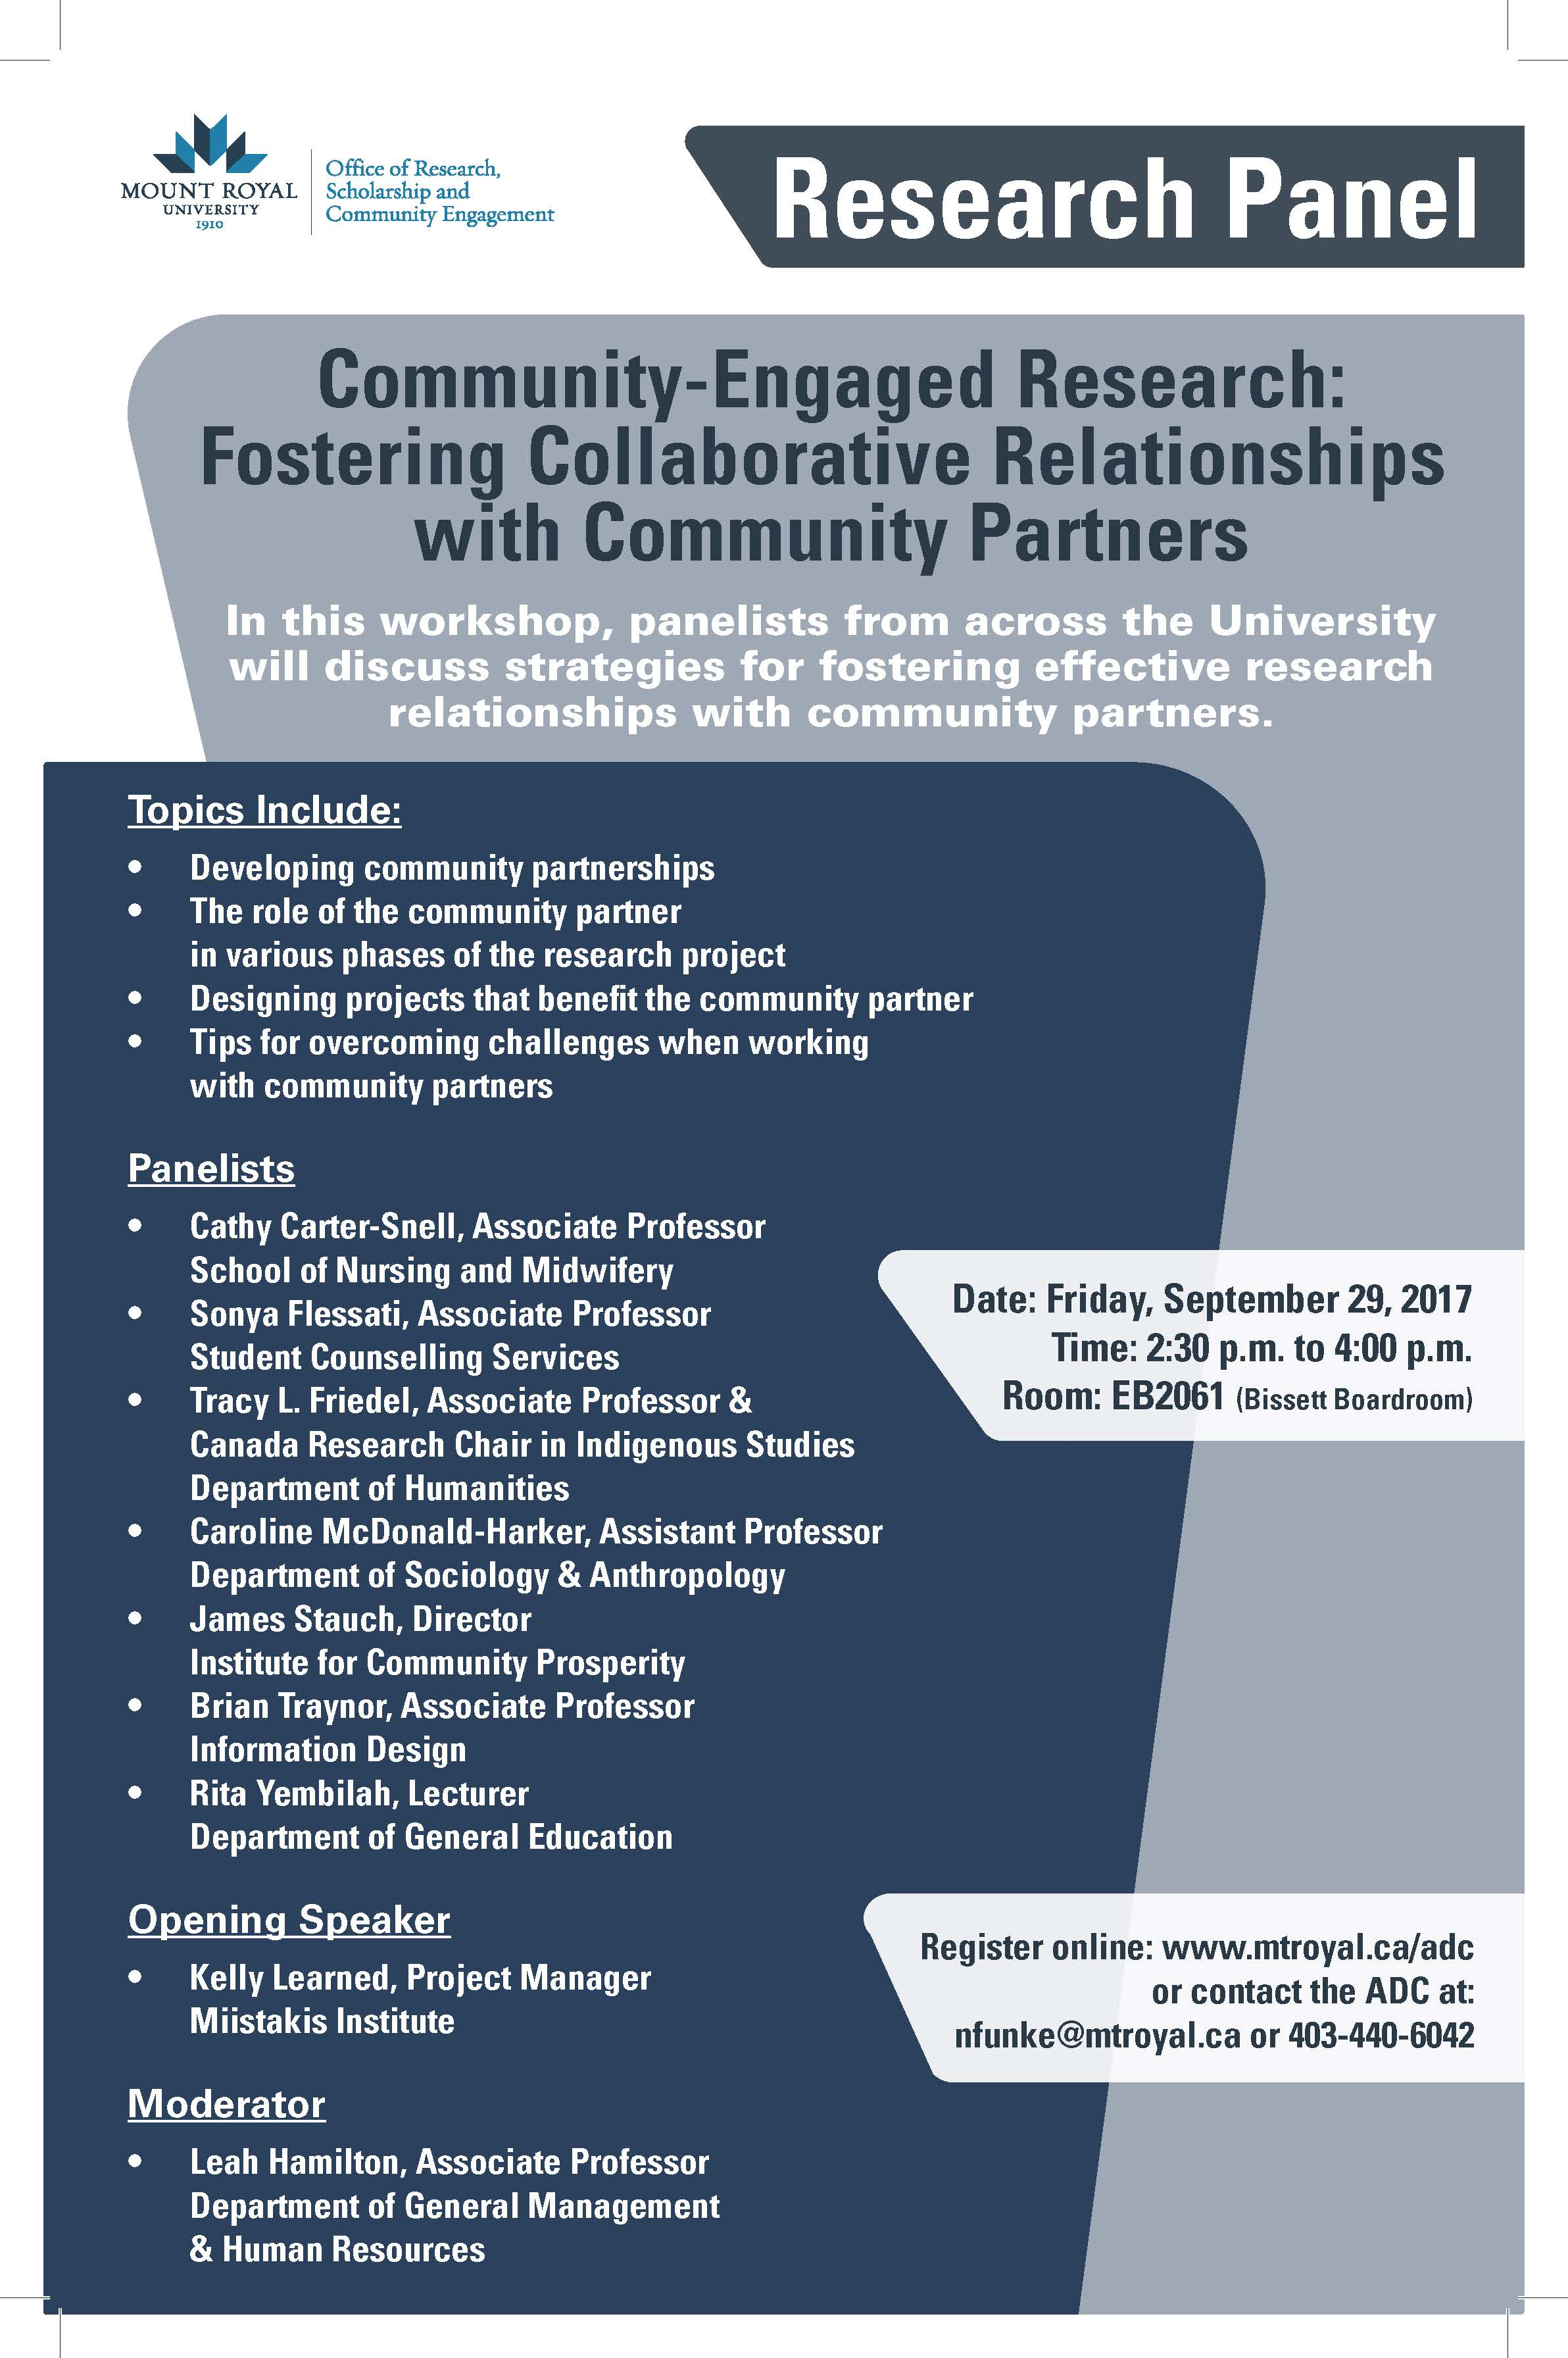 Community-engaged research: Fostering collaborative relationships with community partners.